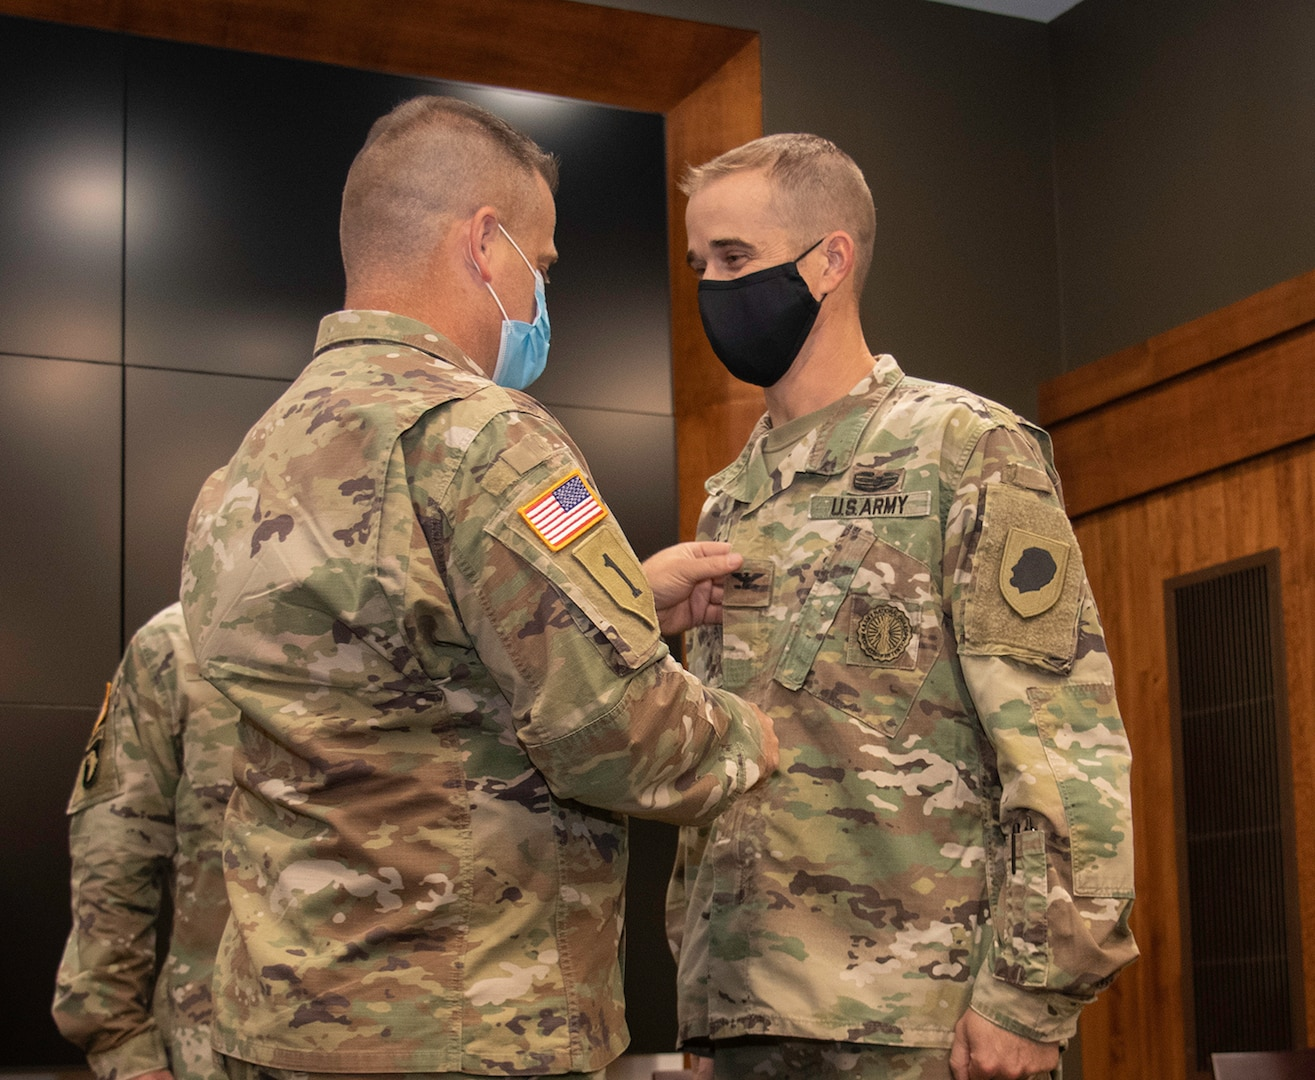 Newly promoted Col. Kevin G. Little's brother, Brig. Gen. Eric Little, Vice Director, National Guard Bureau Force Structure, Resources and Assessment (J-8), places his new rank